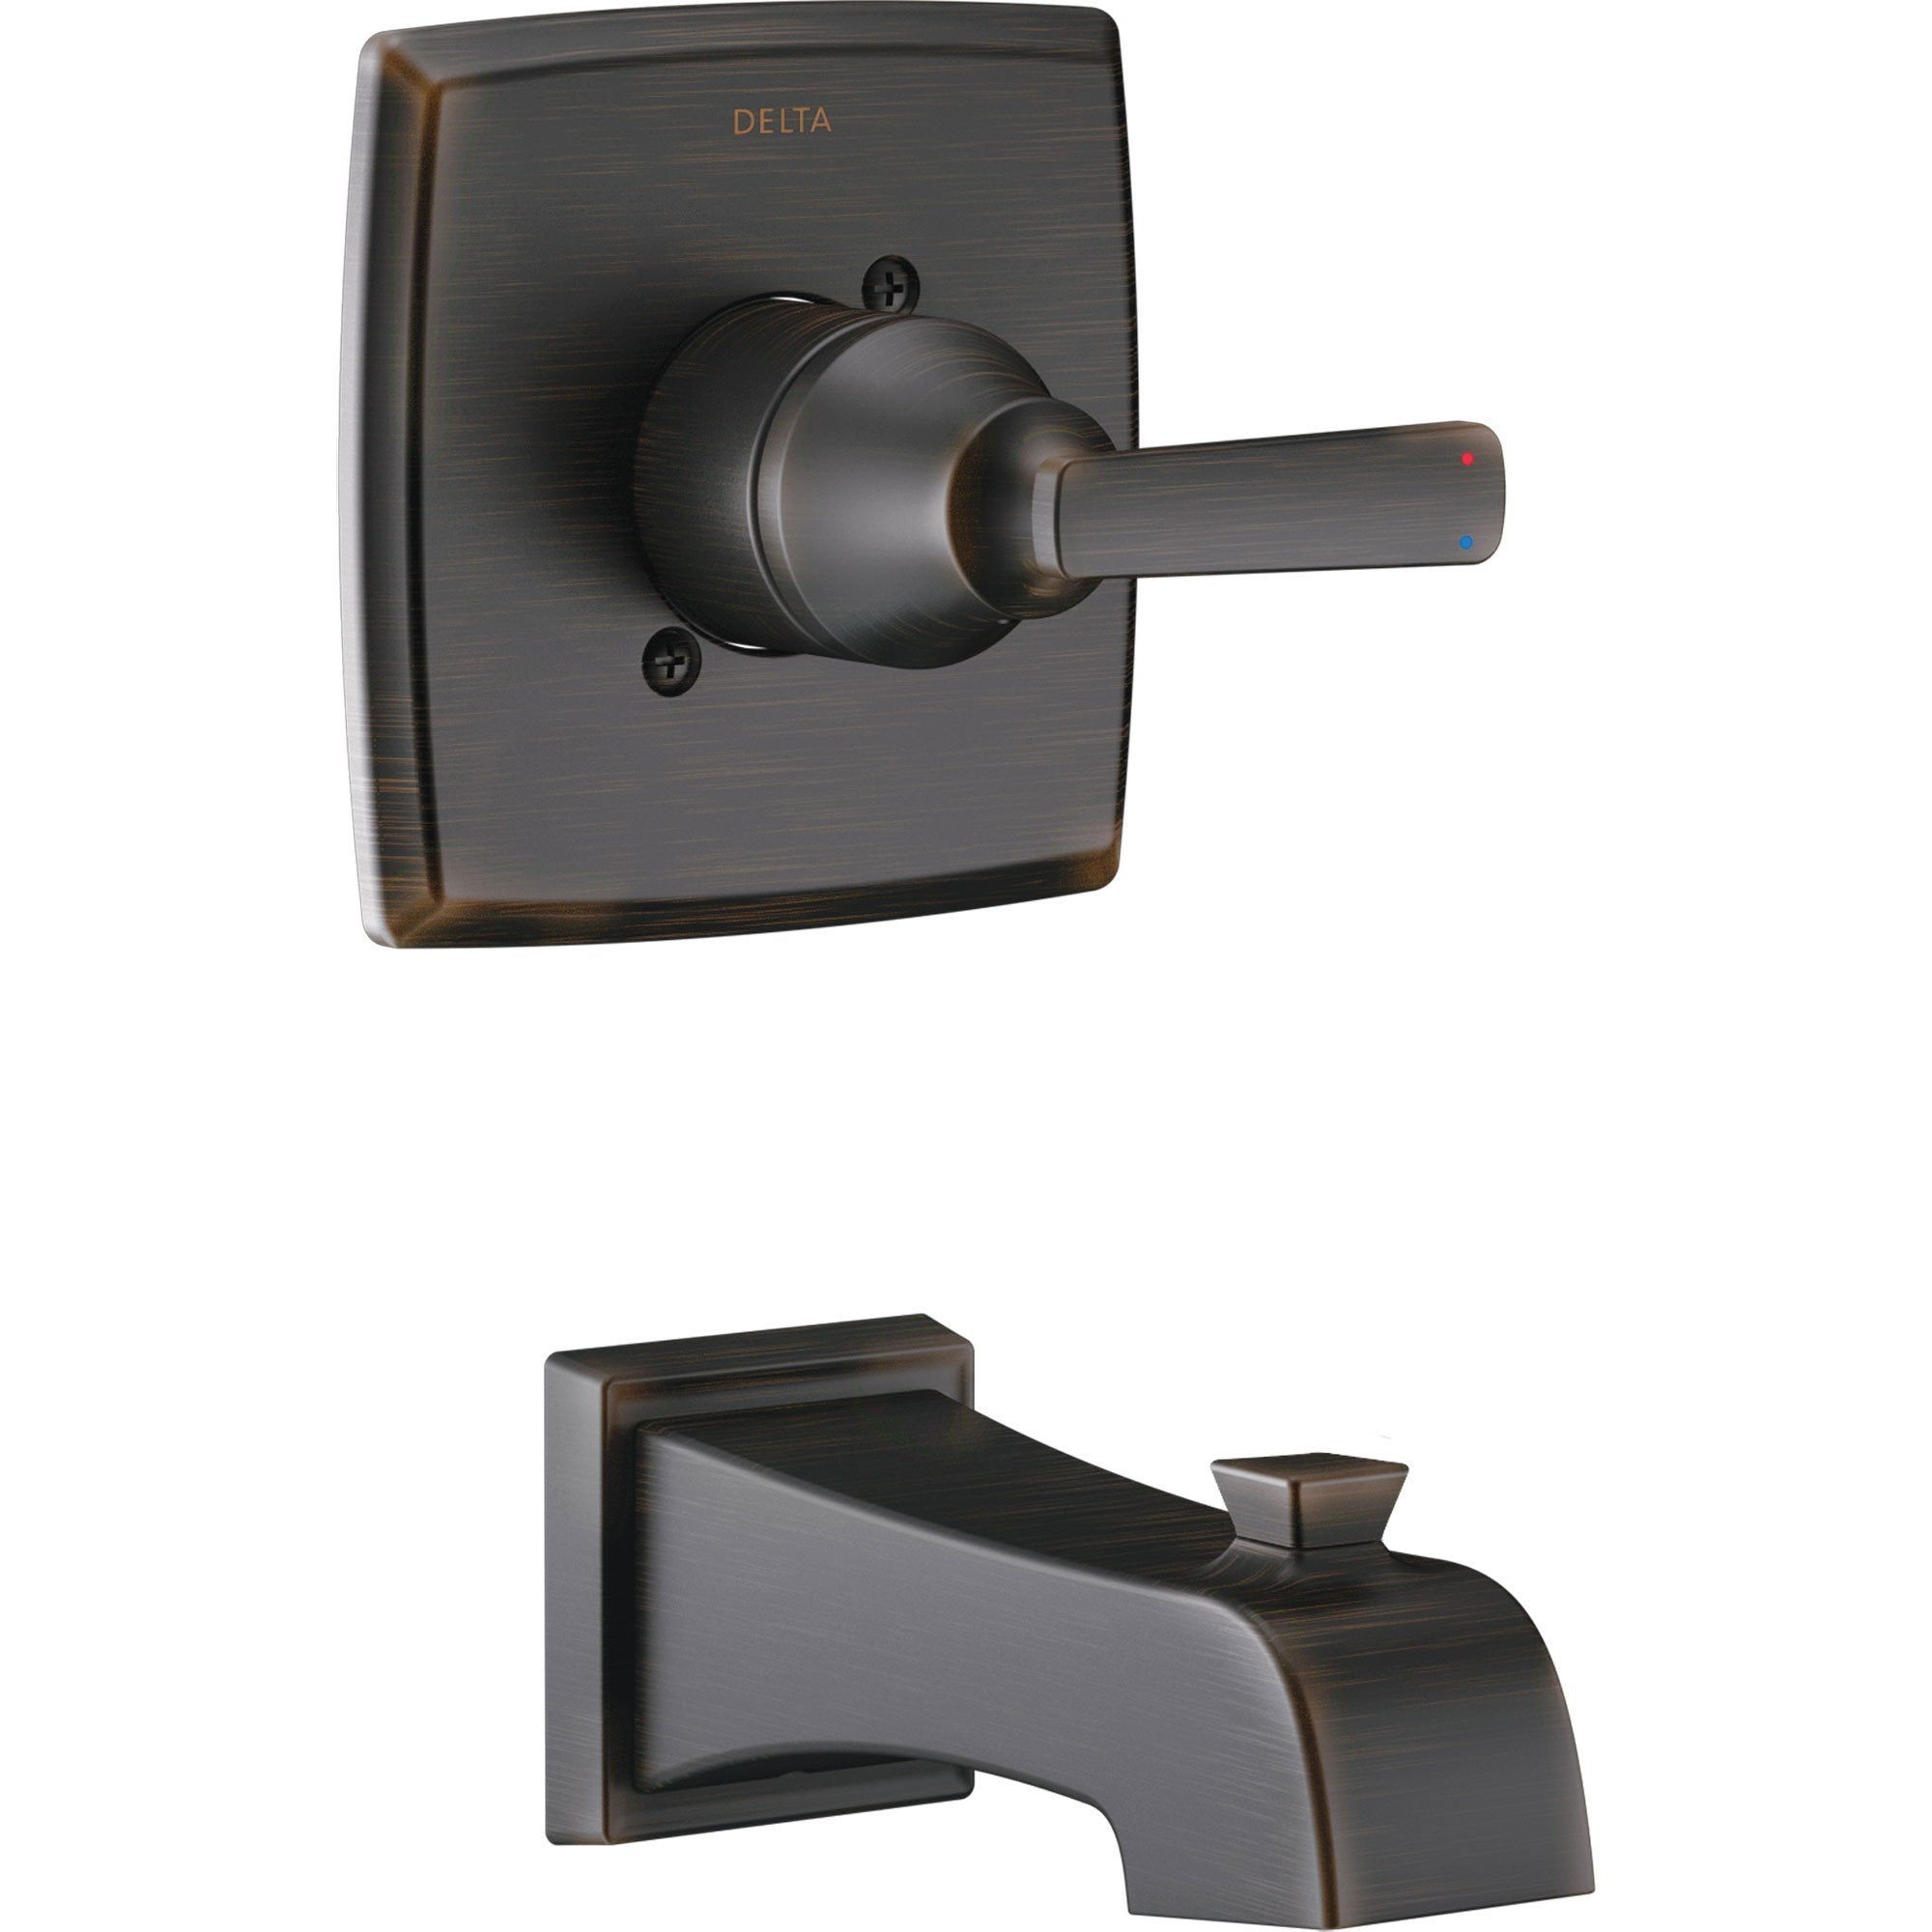 Delta Ashlyn Modern 14 Series Venetian Bronze Finish Single Handle Wall Mounted Tub Only Faucet INCLUDES Rough-in Valve with Stops D1239V